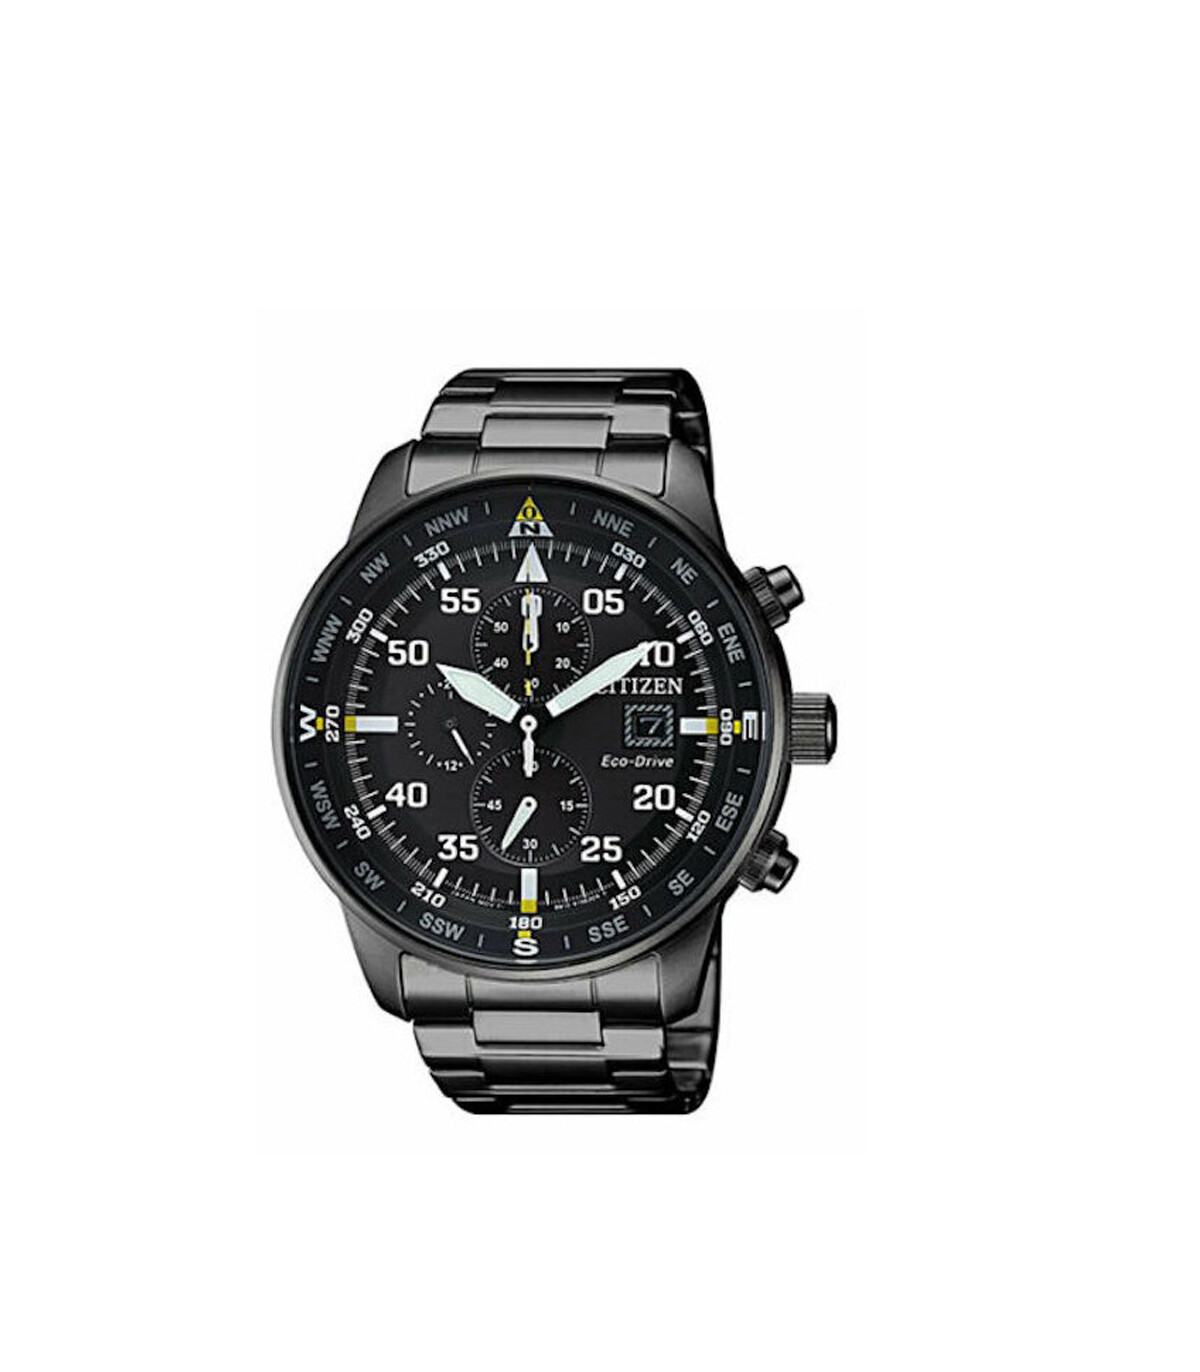 Reloj Hombre Citizen Eco-Drive Men's CA0695-50E Chronograph Black Titanium Band 44mm Watch